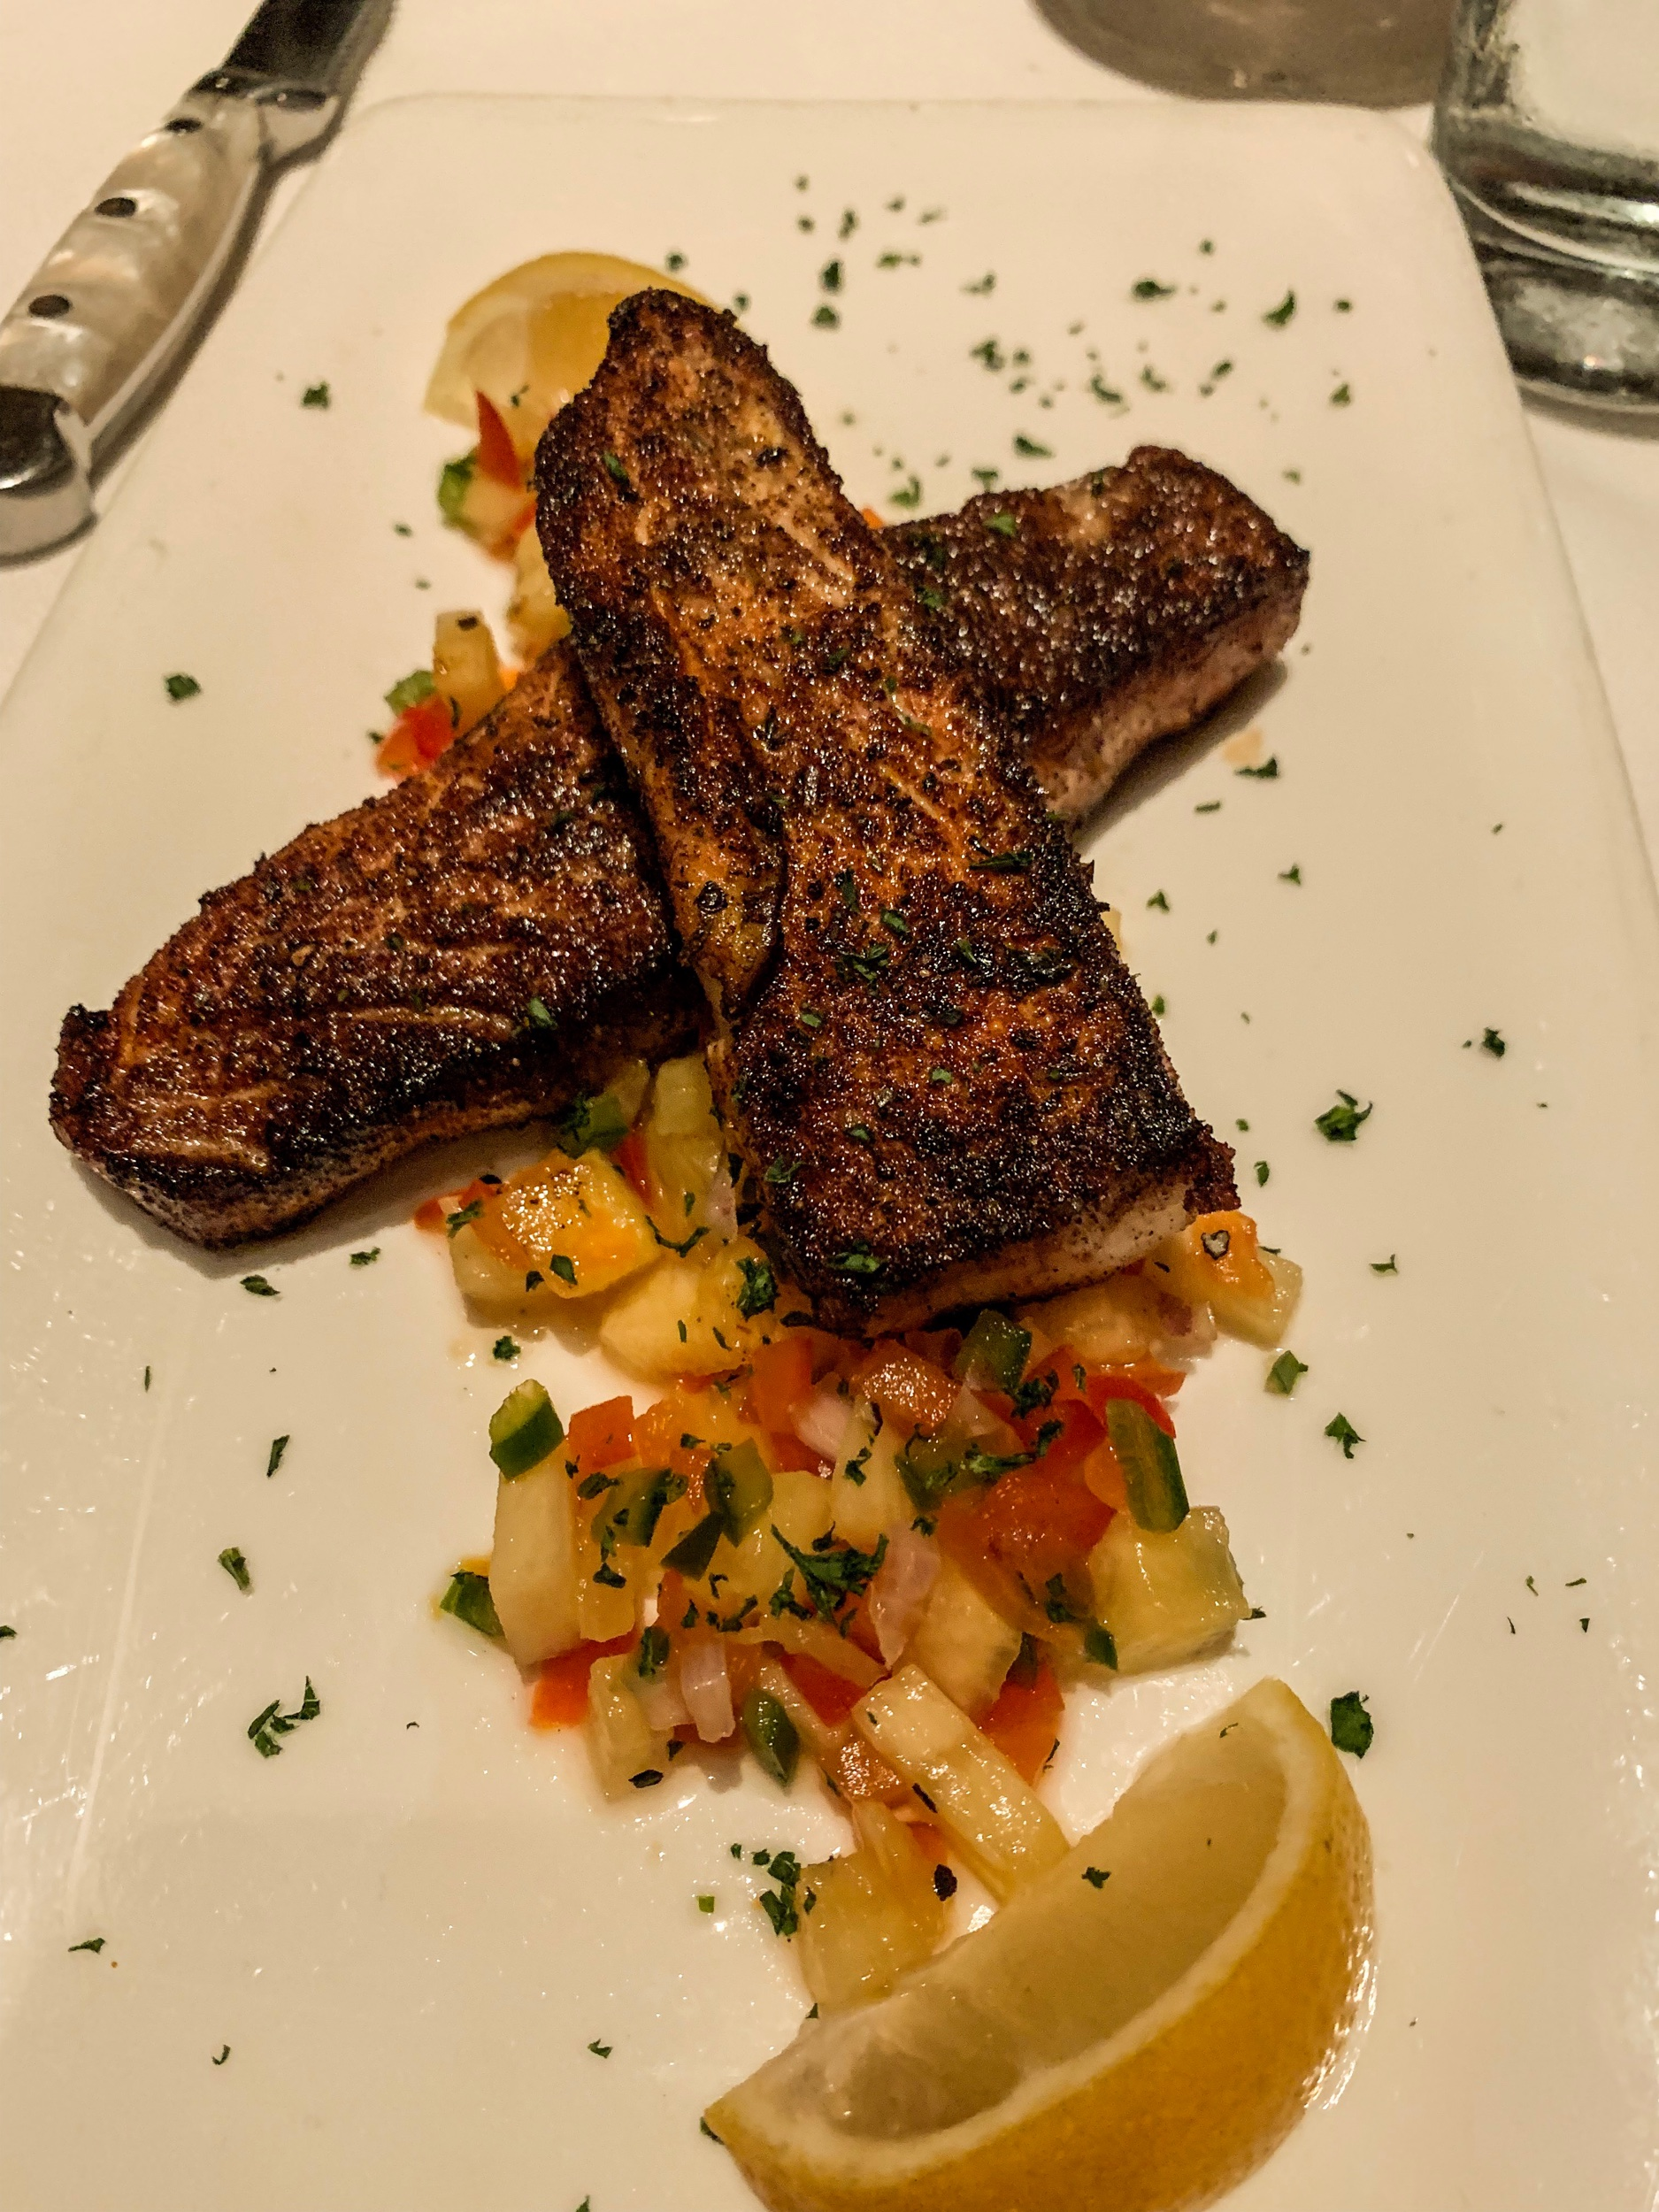 This is blackened Red Snapper, pan-seared, blackening spice, with pineapple salsa. It did not even have a hint of fish taste to it and was cooked perfectly. This was my entree and Kyle kept stealing bites.